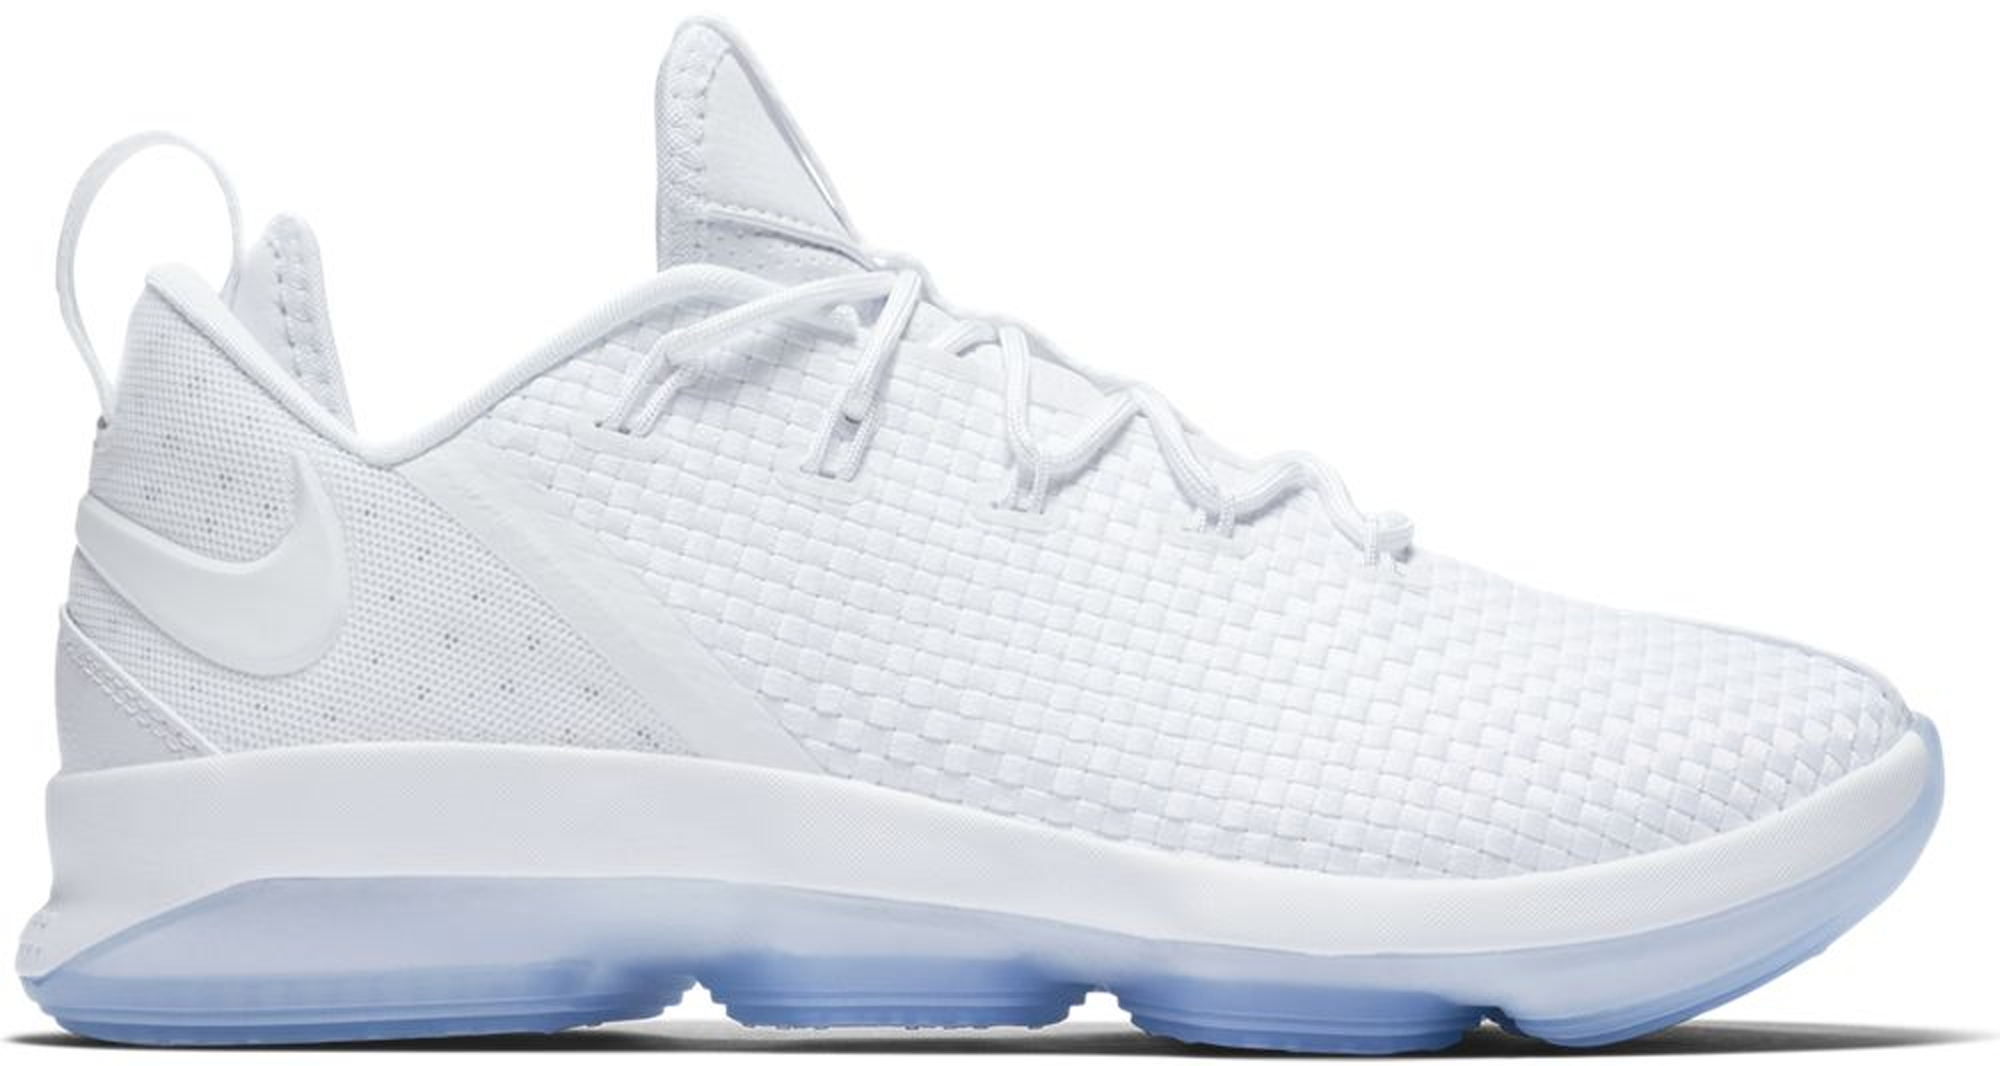 29997531a53f discount nike lebron xiv low ebd43 5d396  new style lebron 14 low white ice  878636 101 fe5b2 ab097